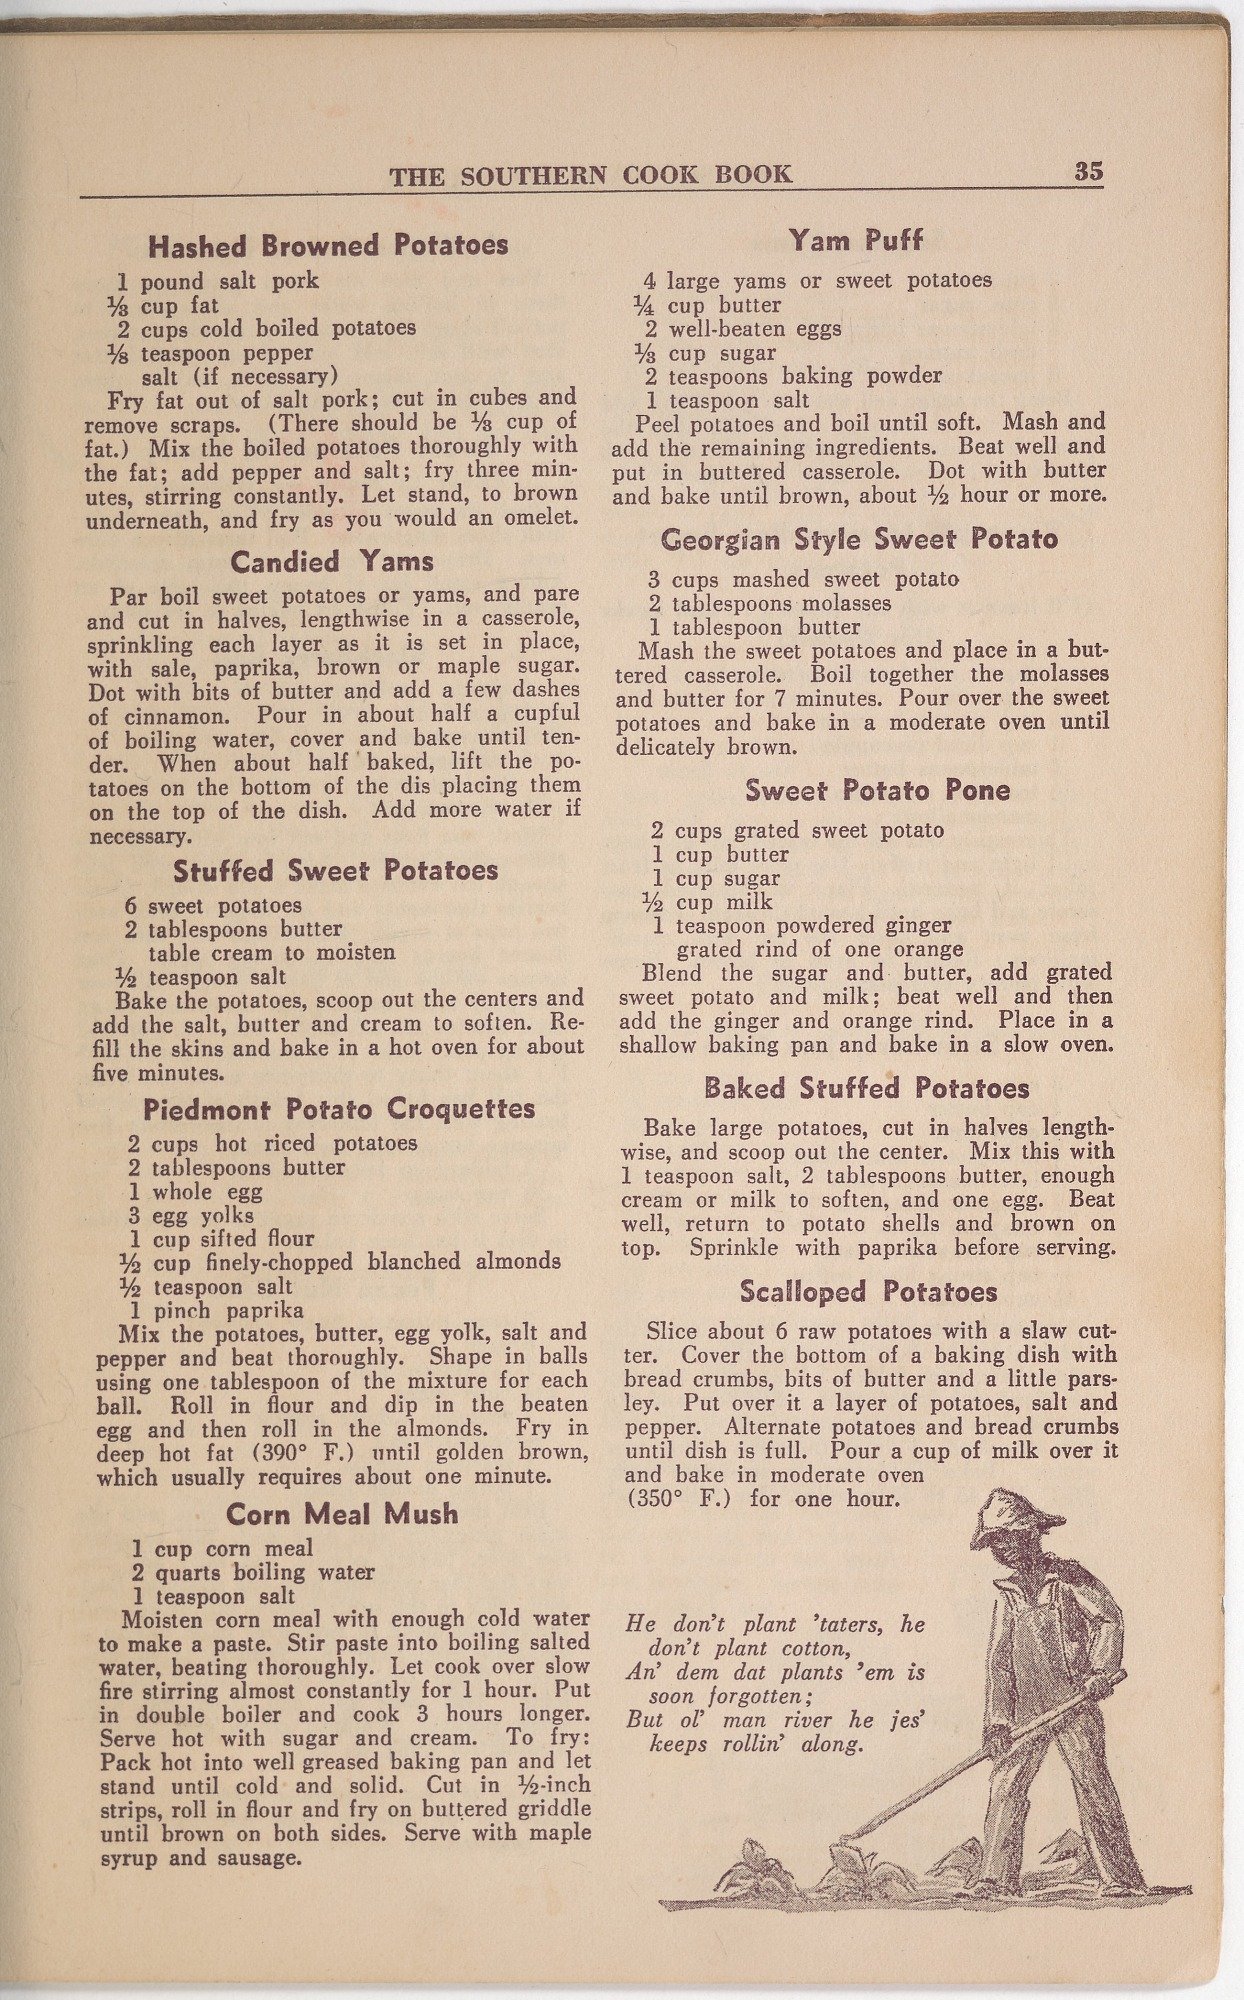 View <I>Southern Cook Book of Fine Old Dixie Recipes</I> digital asset number 37